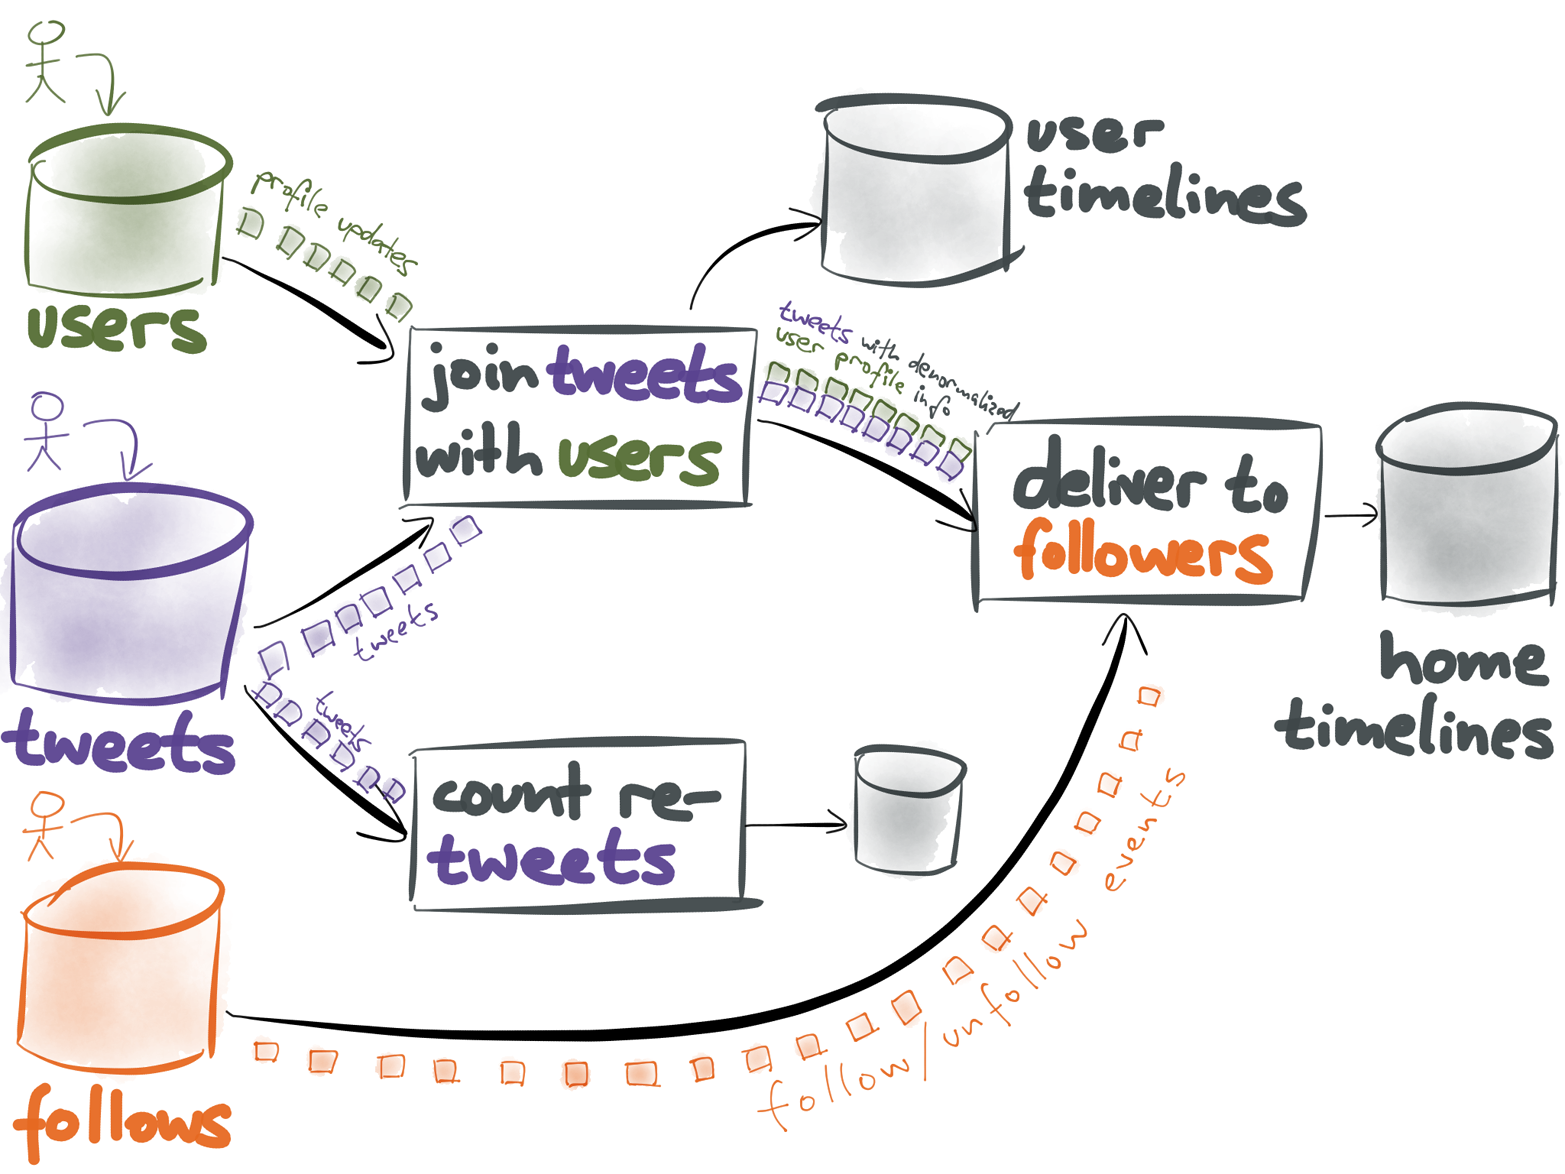 Implementing Twitter timelines by using a stream processing system.